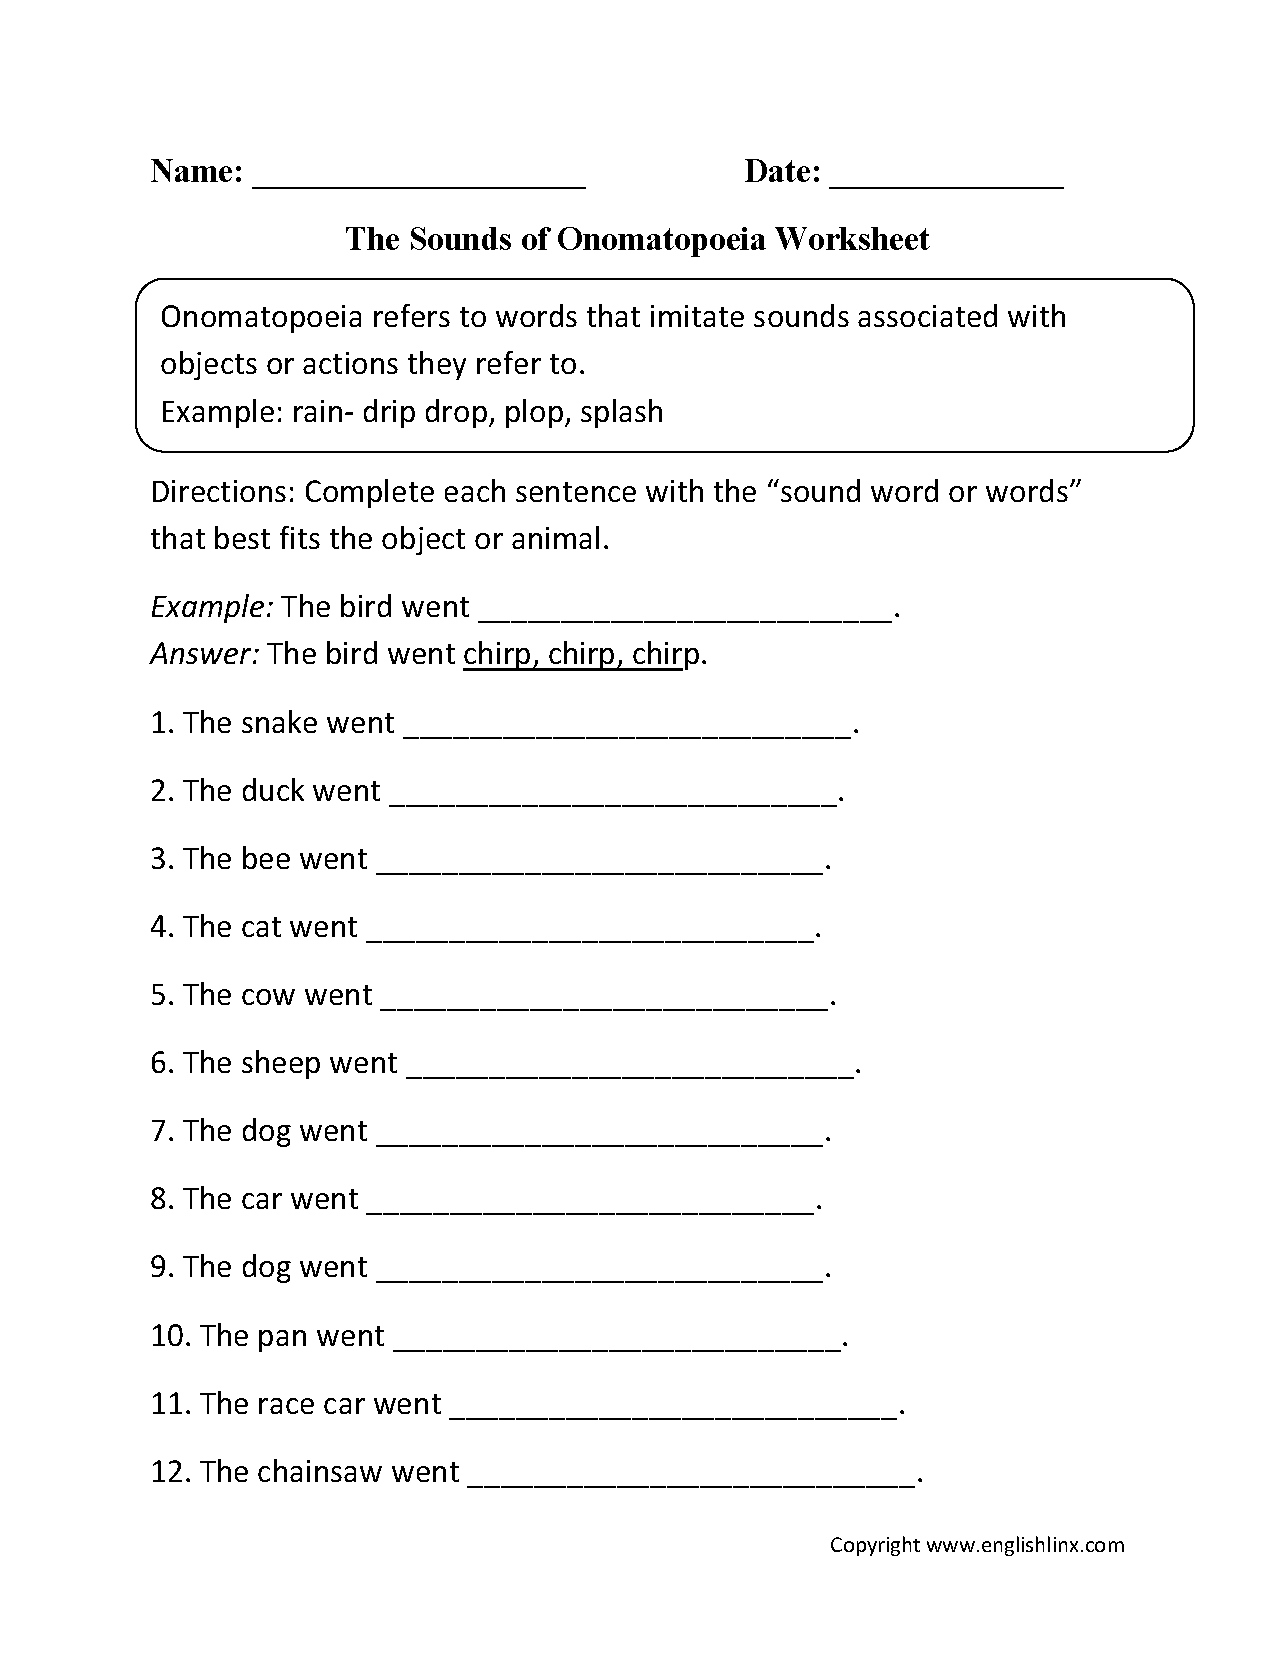 Aldiablosus  Prepossessing Englishlinxcom  Onomatopoeia Worksheets With Marvelous Worksheet With Delectable Personality Test Worksheets Also Compound Subject Verb Agreement Worksheets In Addition Decimal Worksheets Free And Fractions Worksheets Printable As Well As Free Worksheets For Teachers To Print Additionally Dodging Table Worksheet From Englishlinxcom With Aldiablosus  Marvelous Englishlinxcom  Onomatopoeia Worksheets With Delectable Worksheet And Prepossessing Personality Test Worksheets Also Compound Subject Verb Agreement Worksheets In Addition Decimal Worksheets Free From Englishlinxcom